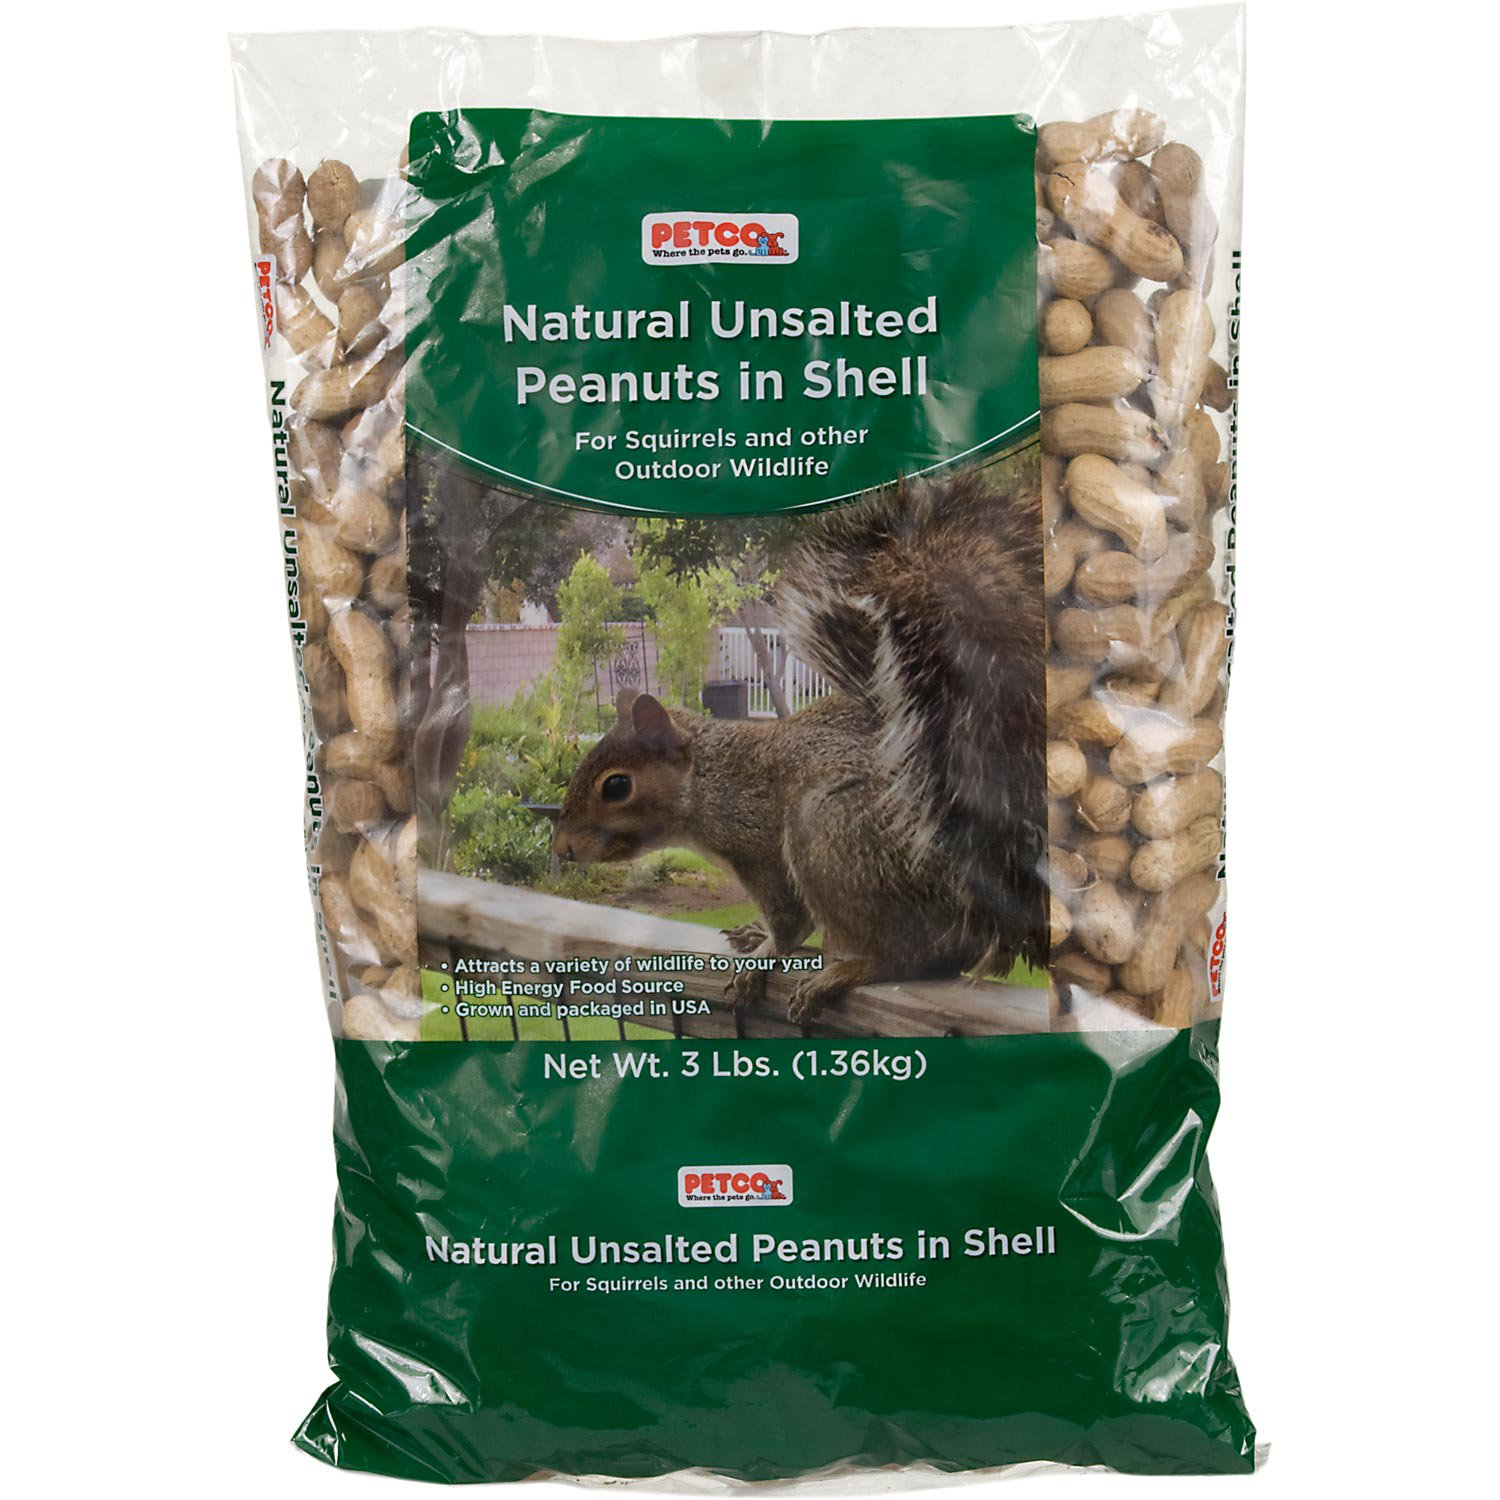 Petco Natural Unsalted Peanuts in Shell Wildlife Food   Petco at Petco in Braselton, GA   Tuggl